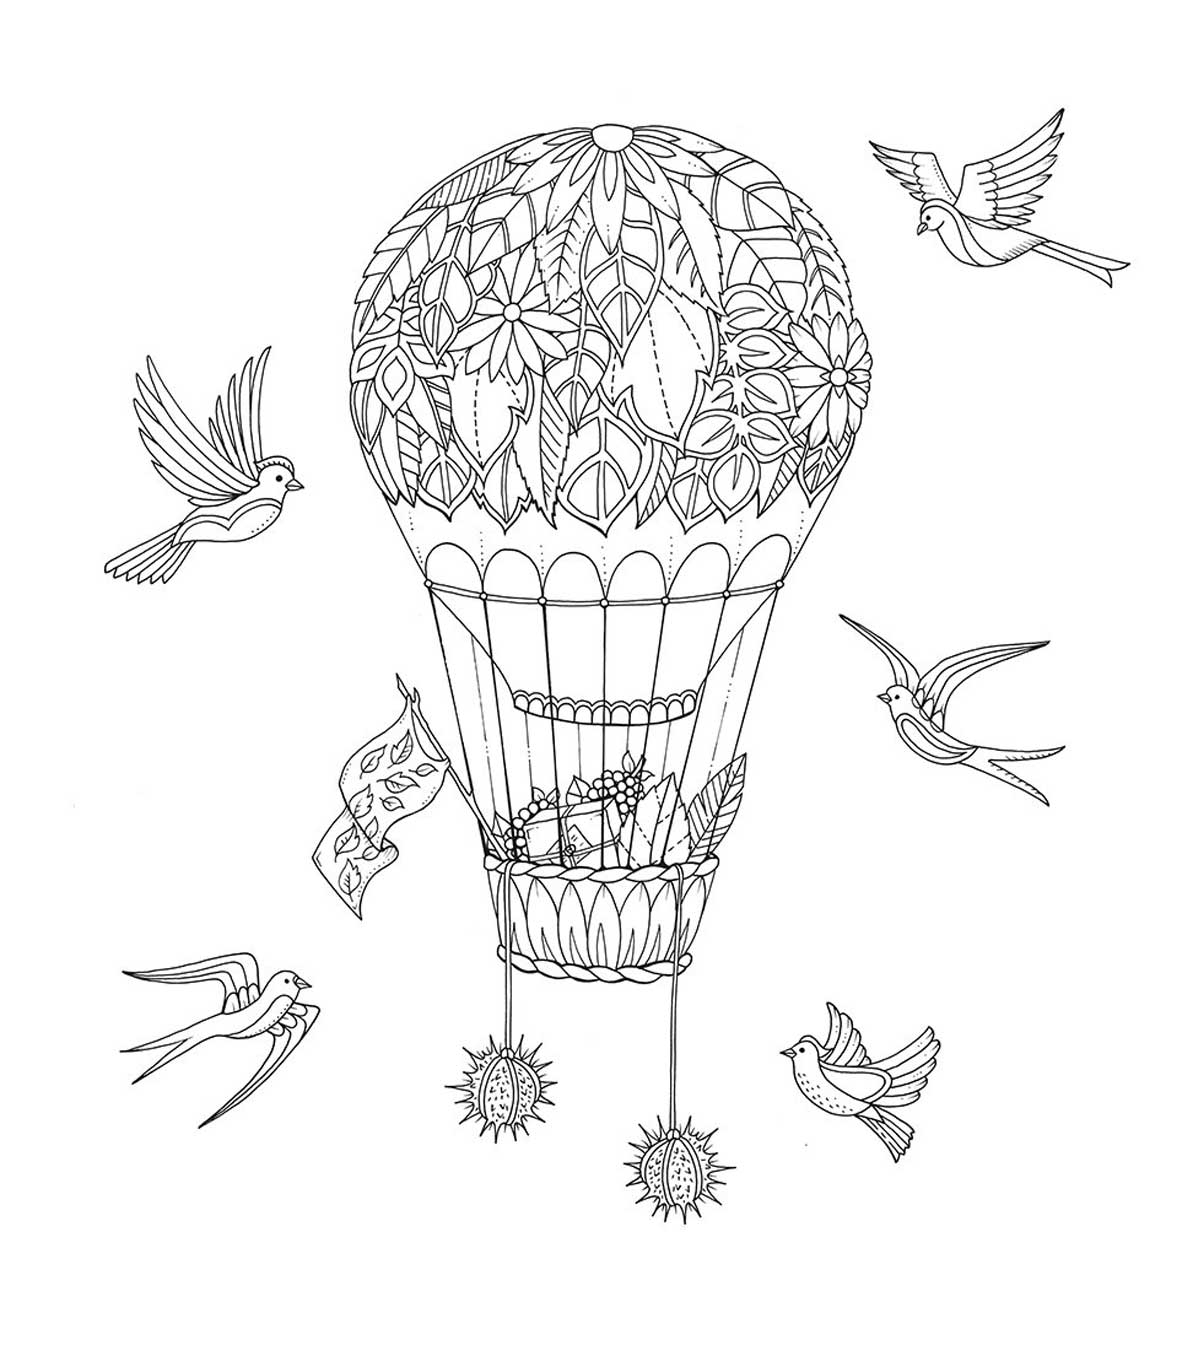 Enchanted Forest Coloring Pages Printable At Getdrawings Free Download